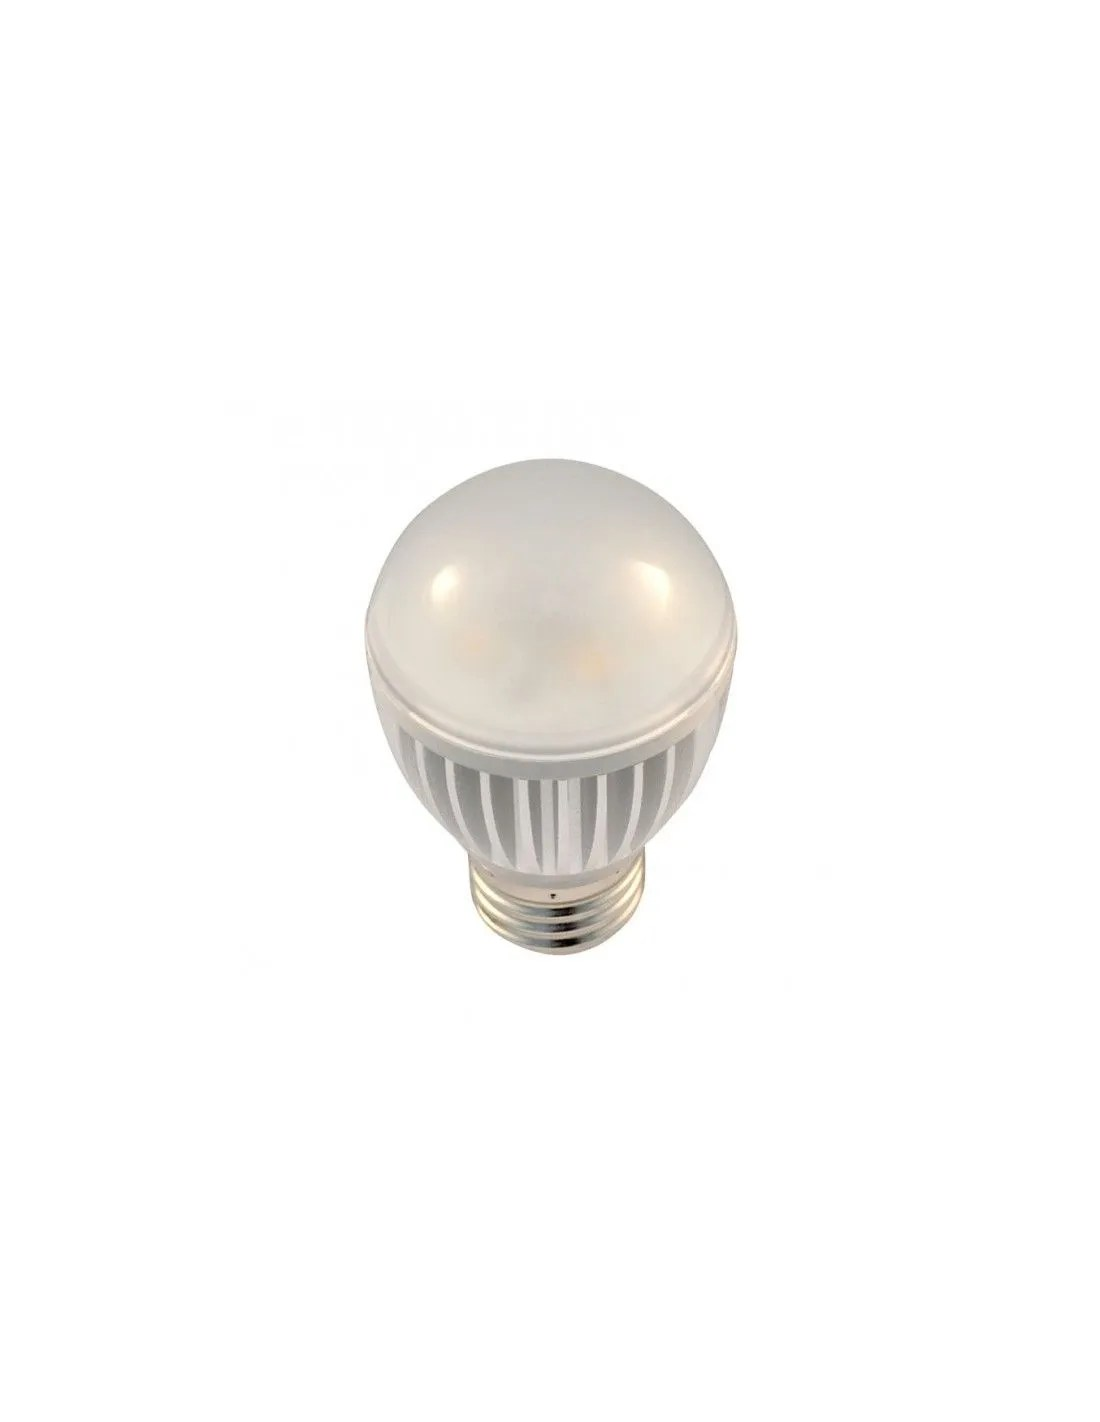 Ampoule Led Dimmable Ampoule Led 6w E14 Dimmable Blanc Chaud Cree Econergyworld En